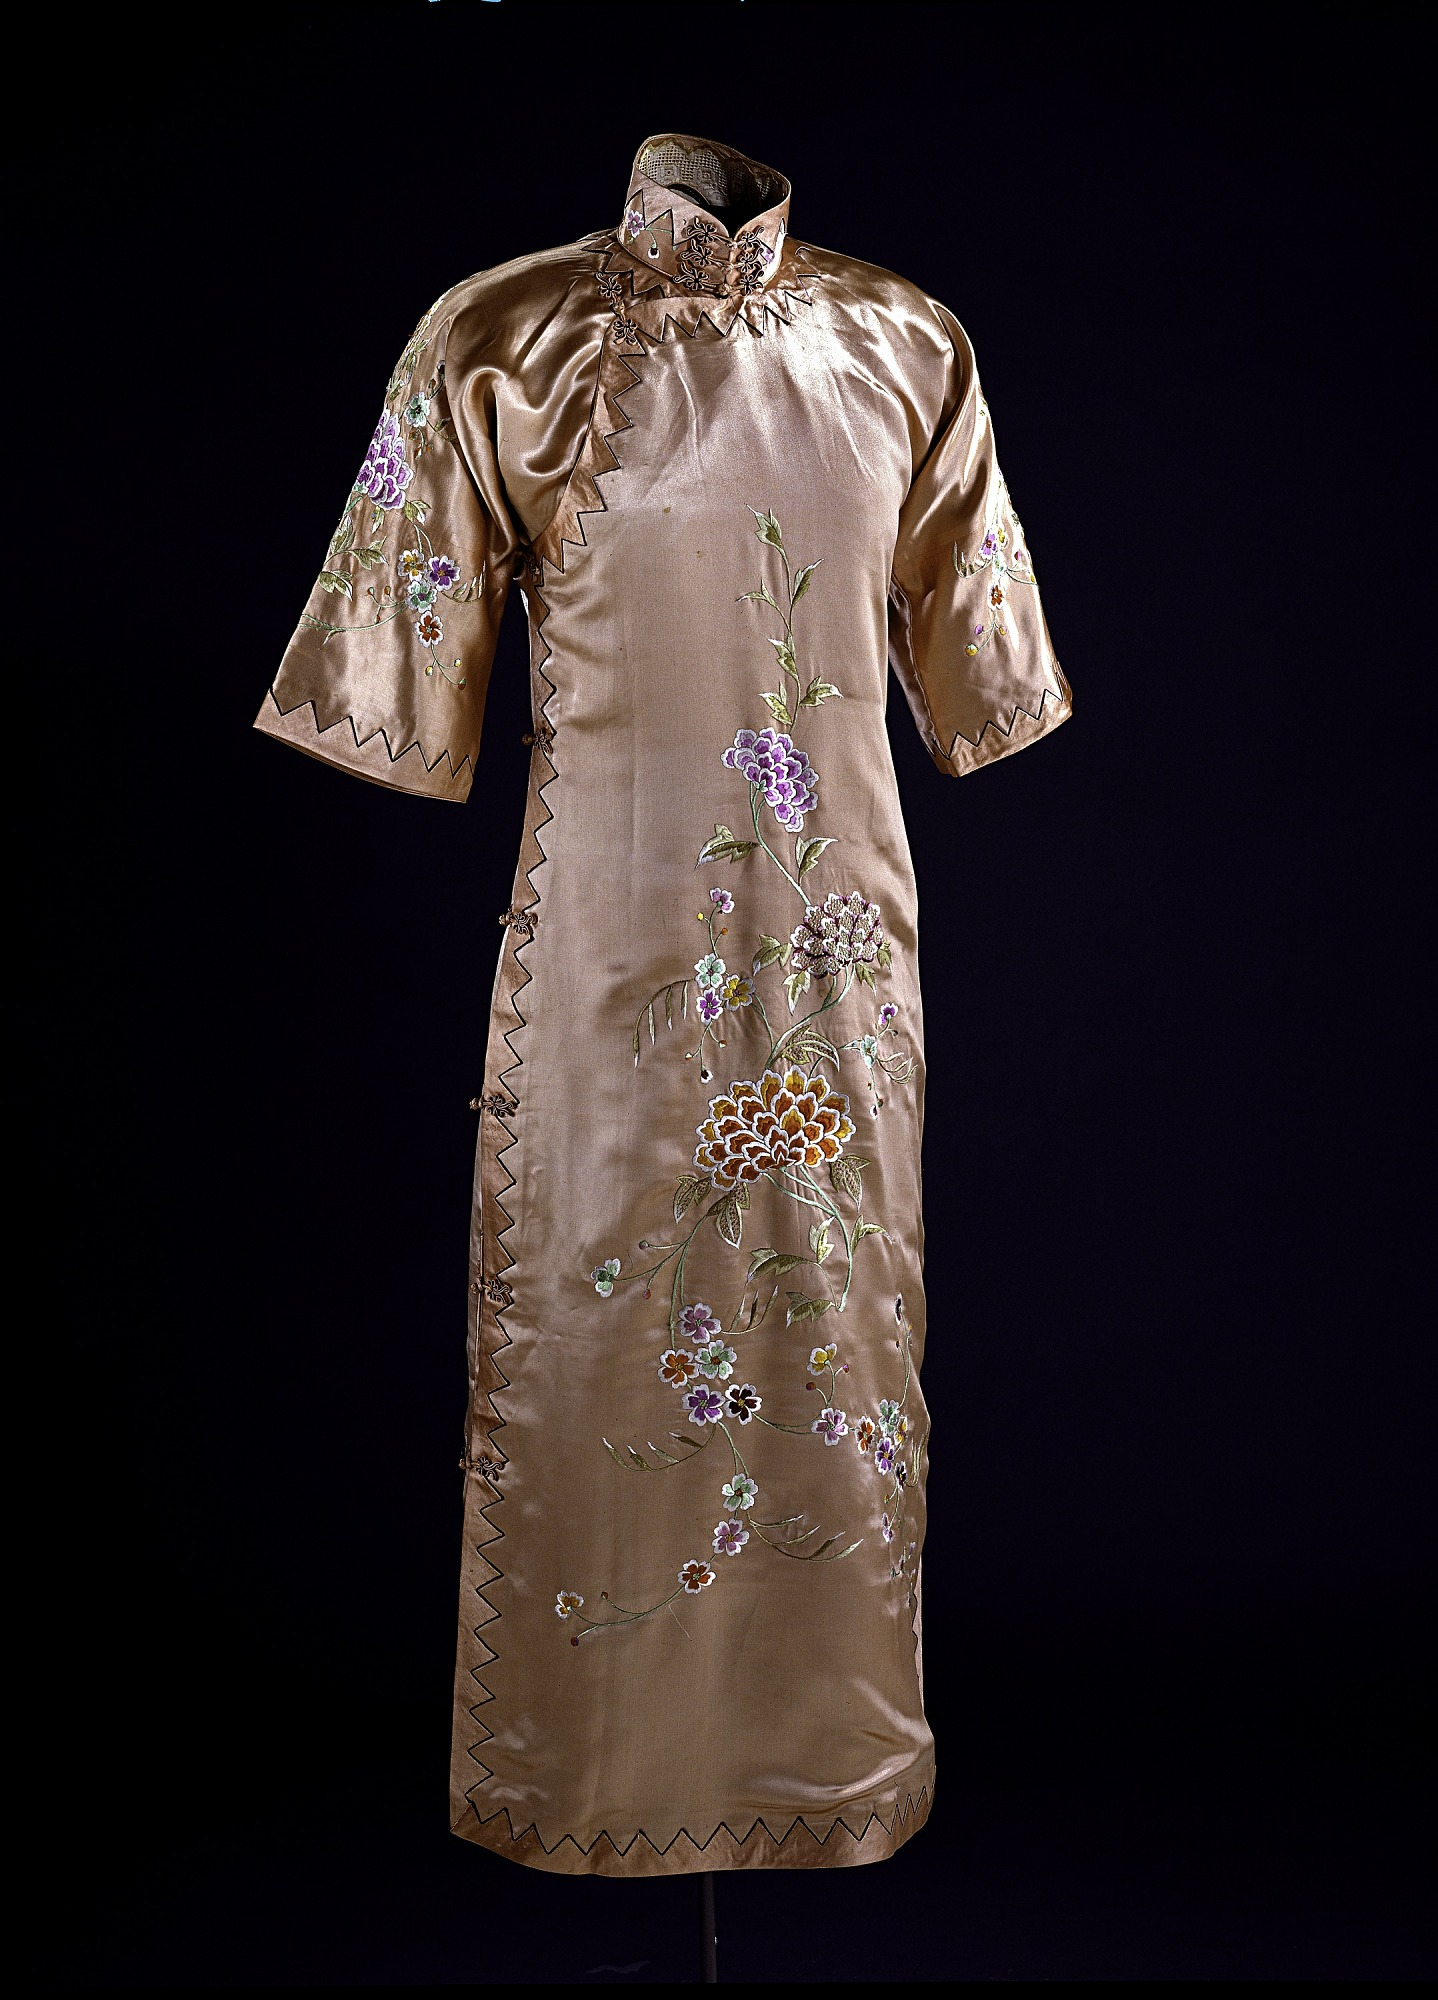 Image of a silk satin dress